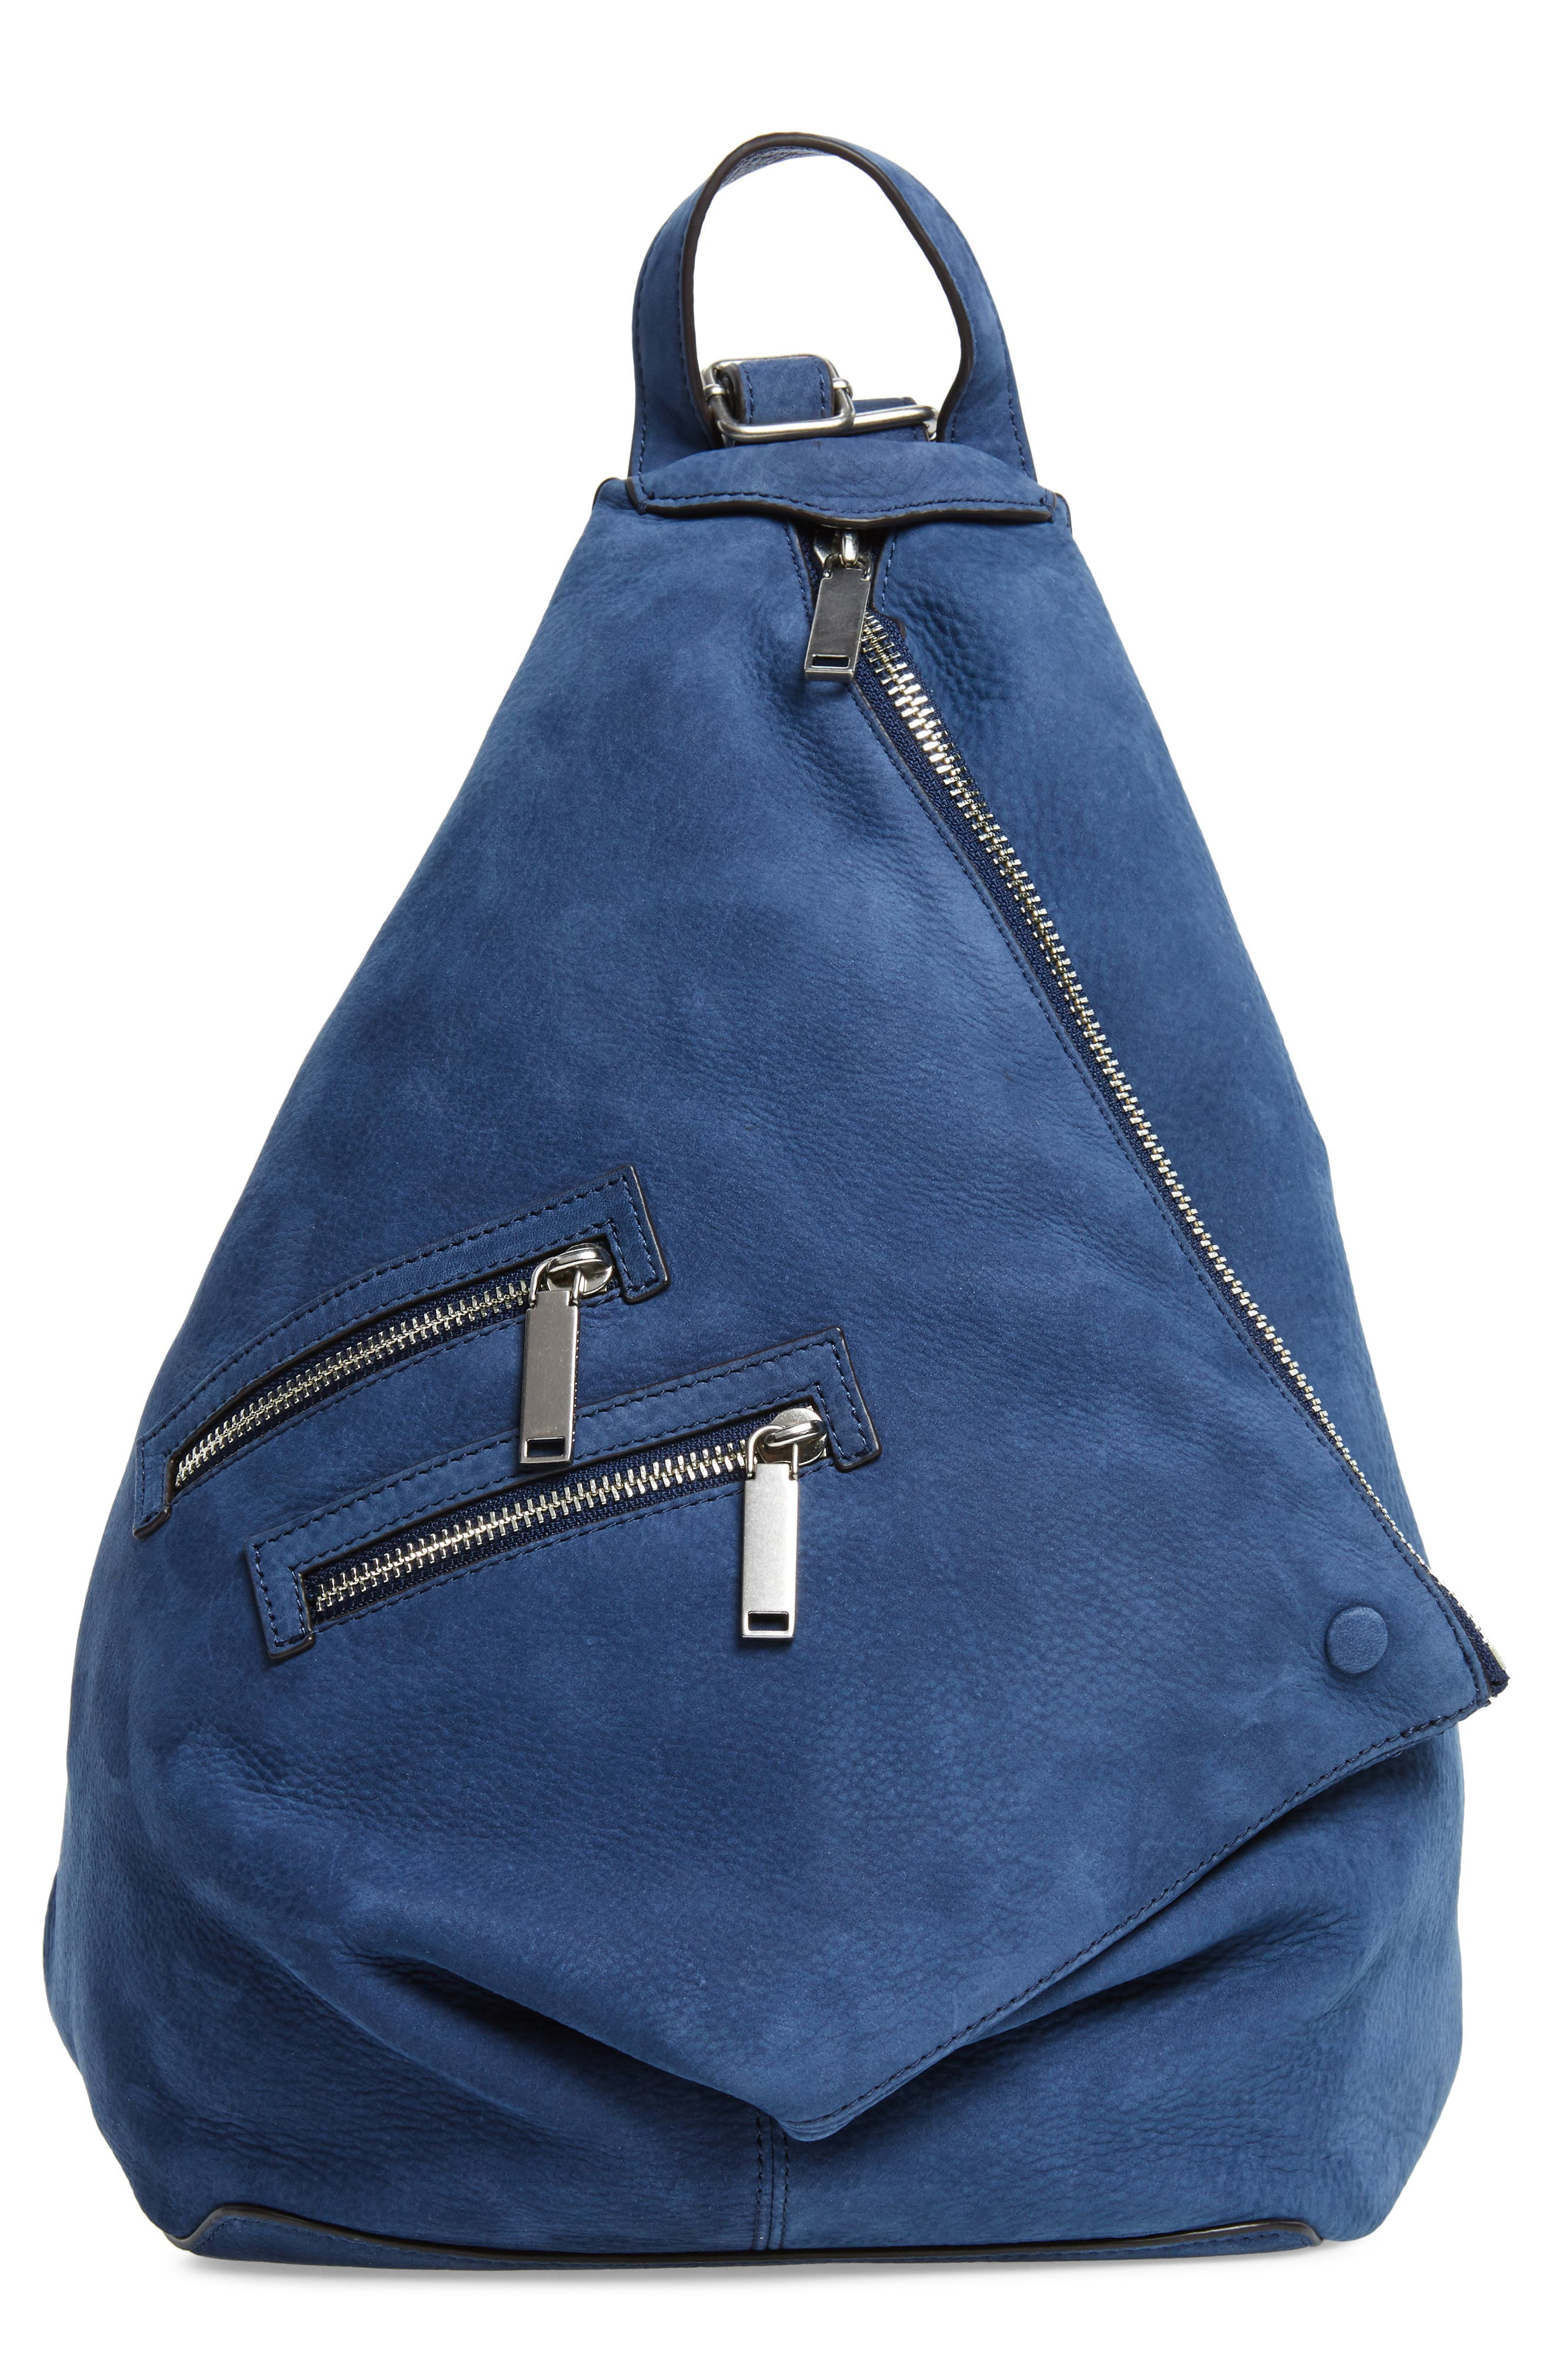 Jamie Nubuck Leather Backpack,                             Main thumbnail 1, color,                             True Navy